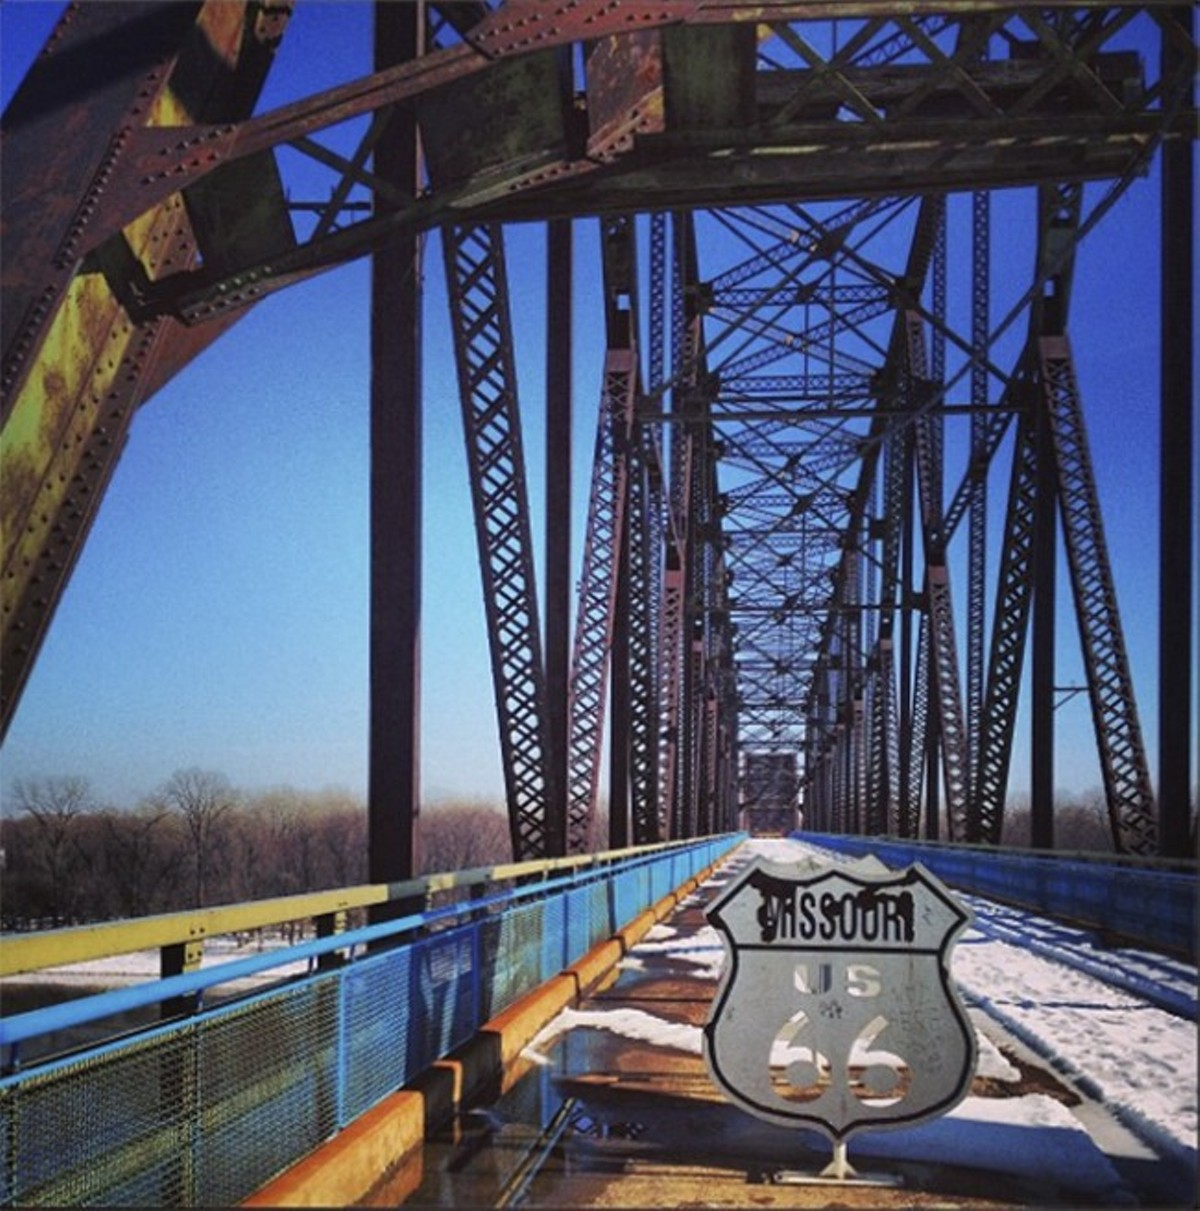 The Chain of Rocks Bridge: Always a thrill.